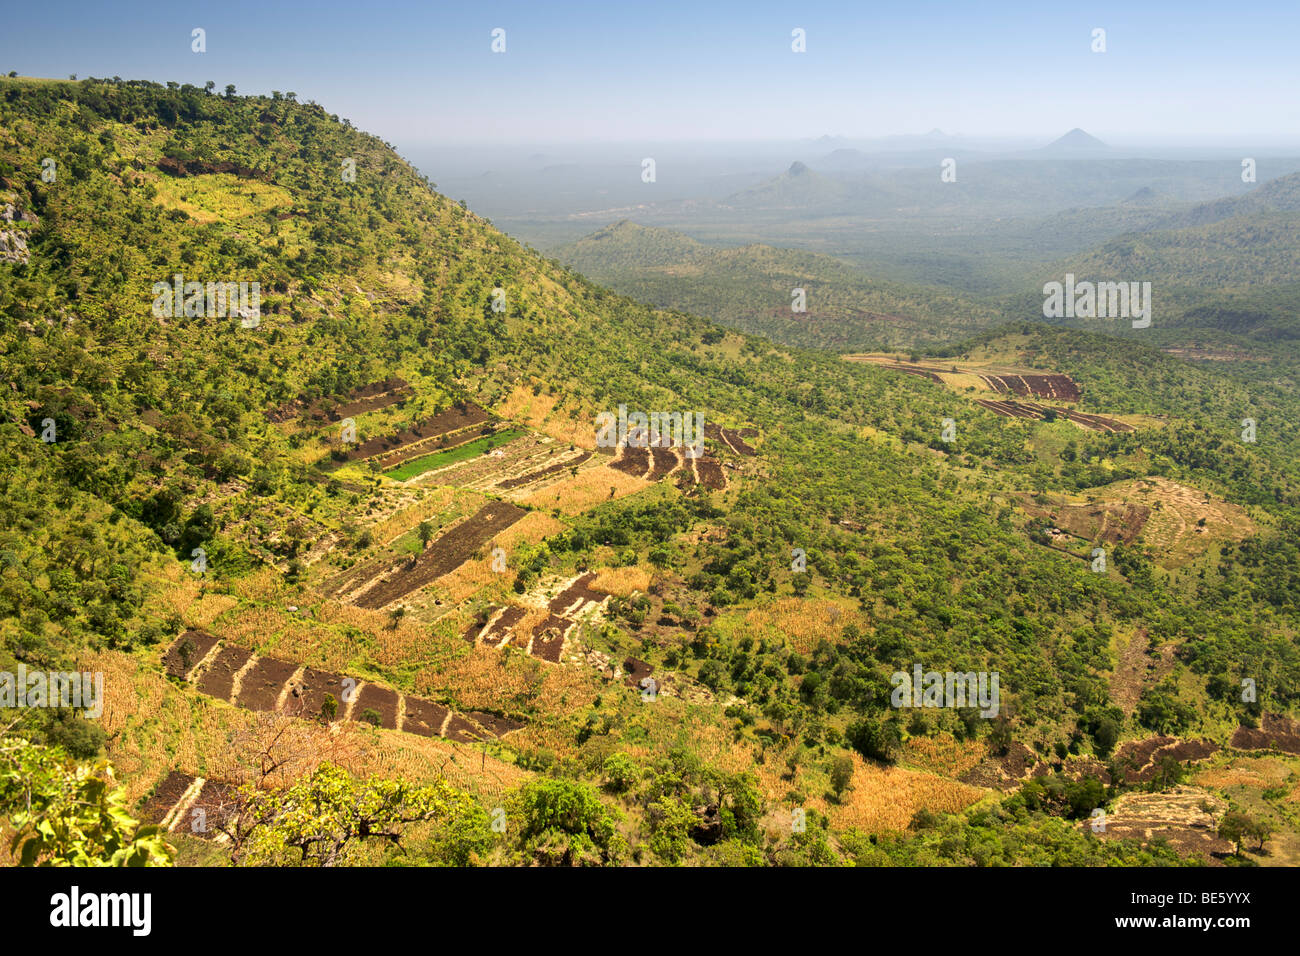 View across the Great Rift Valley from the slopes of Mount Elgon in Uganda. Stock Photo